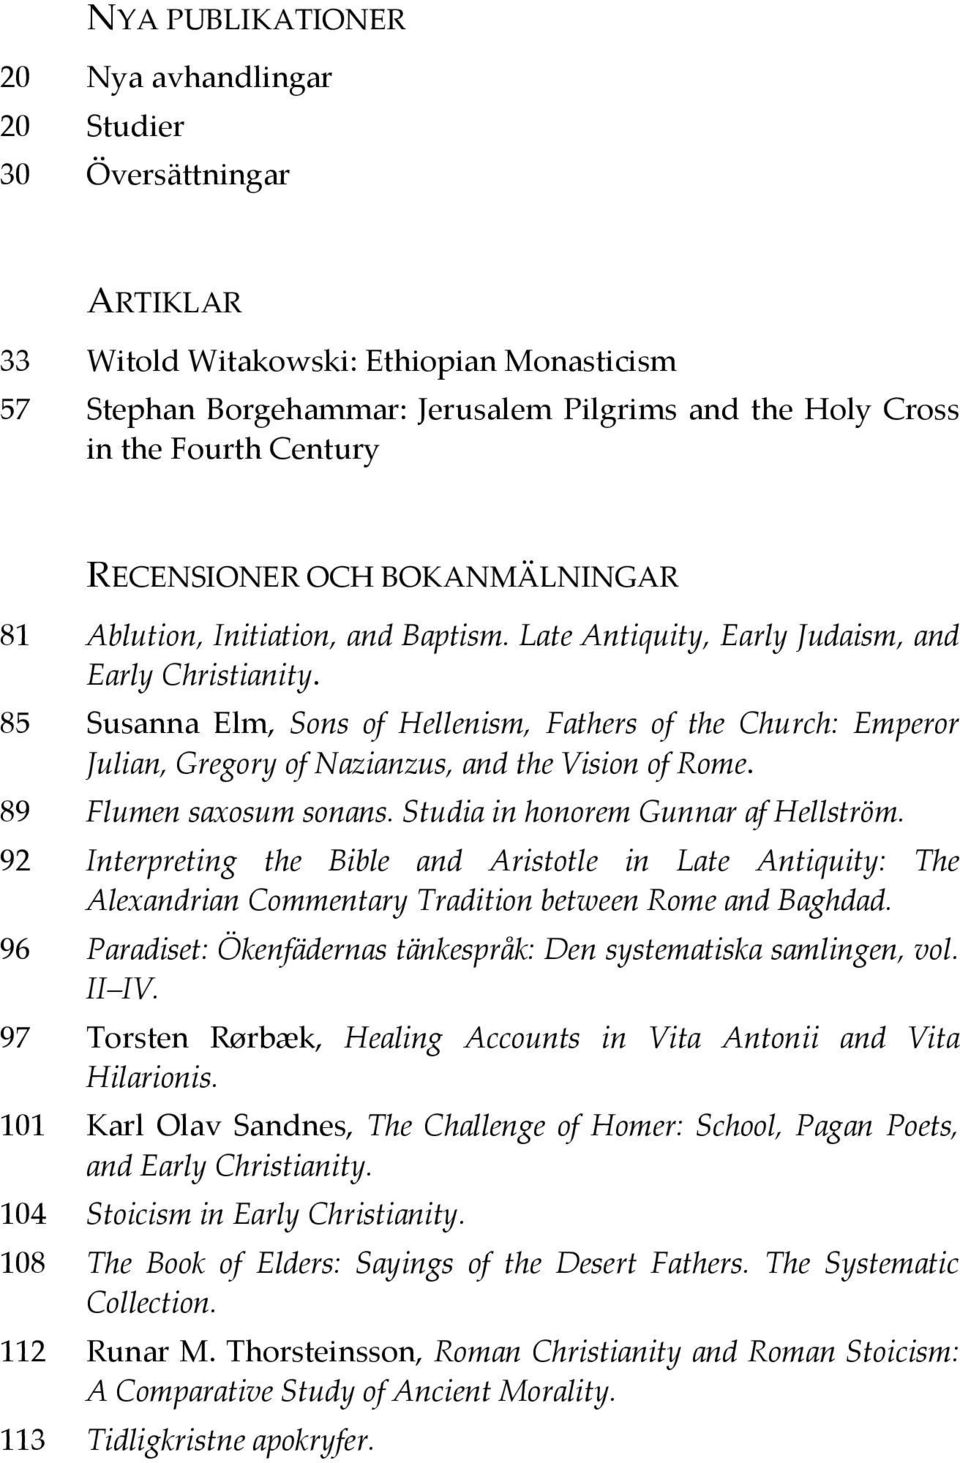 85 Susanna Elm, Sons of Hellenism, Fathers of the Church: Emperor Julian, Gregory of Nazianzus, and the Vision of Rome. 89 Flumen saxosum sonans. Studia in honorem Gunnar af Hellström.